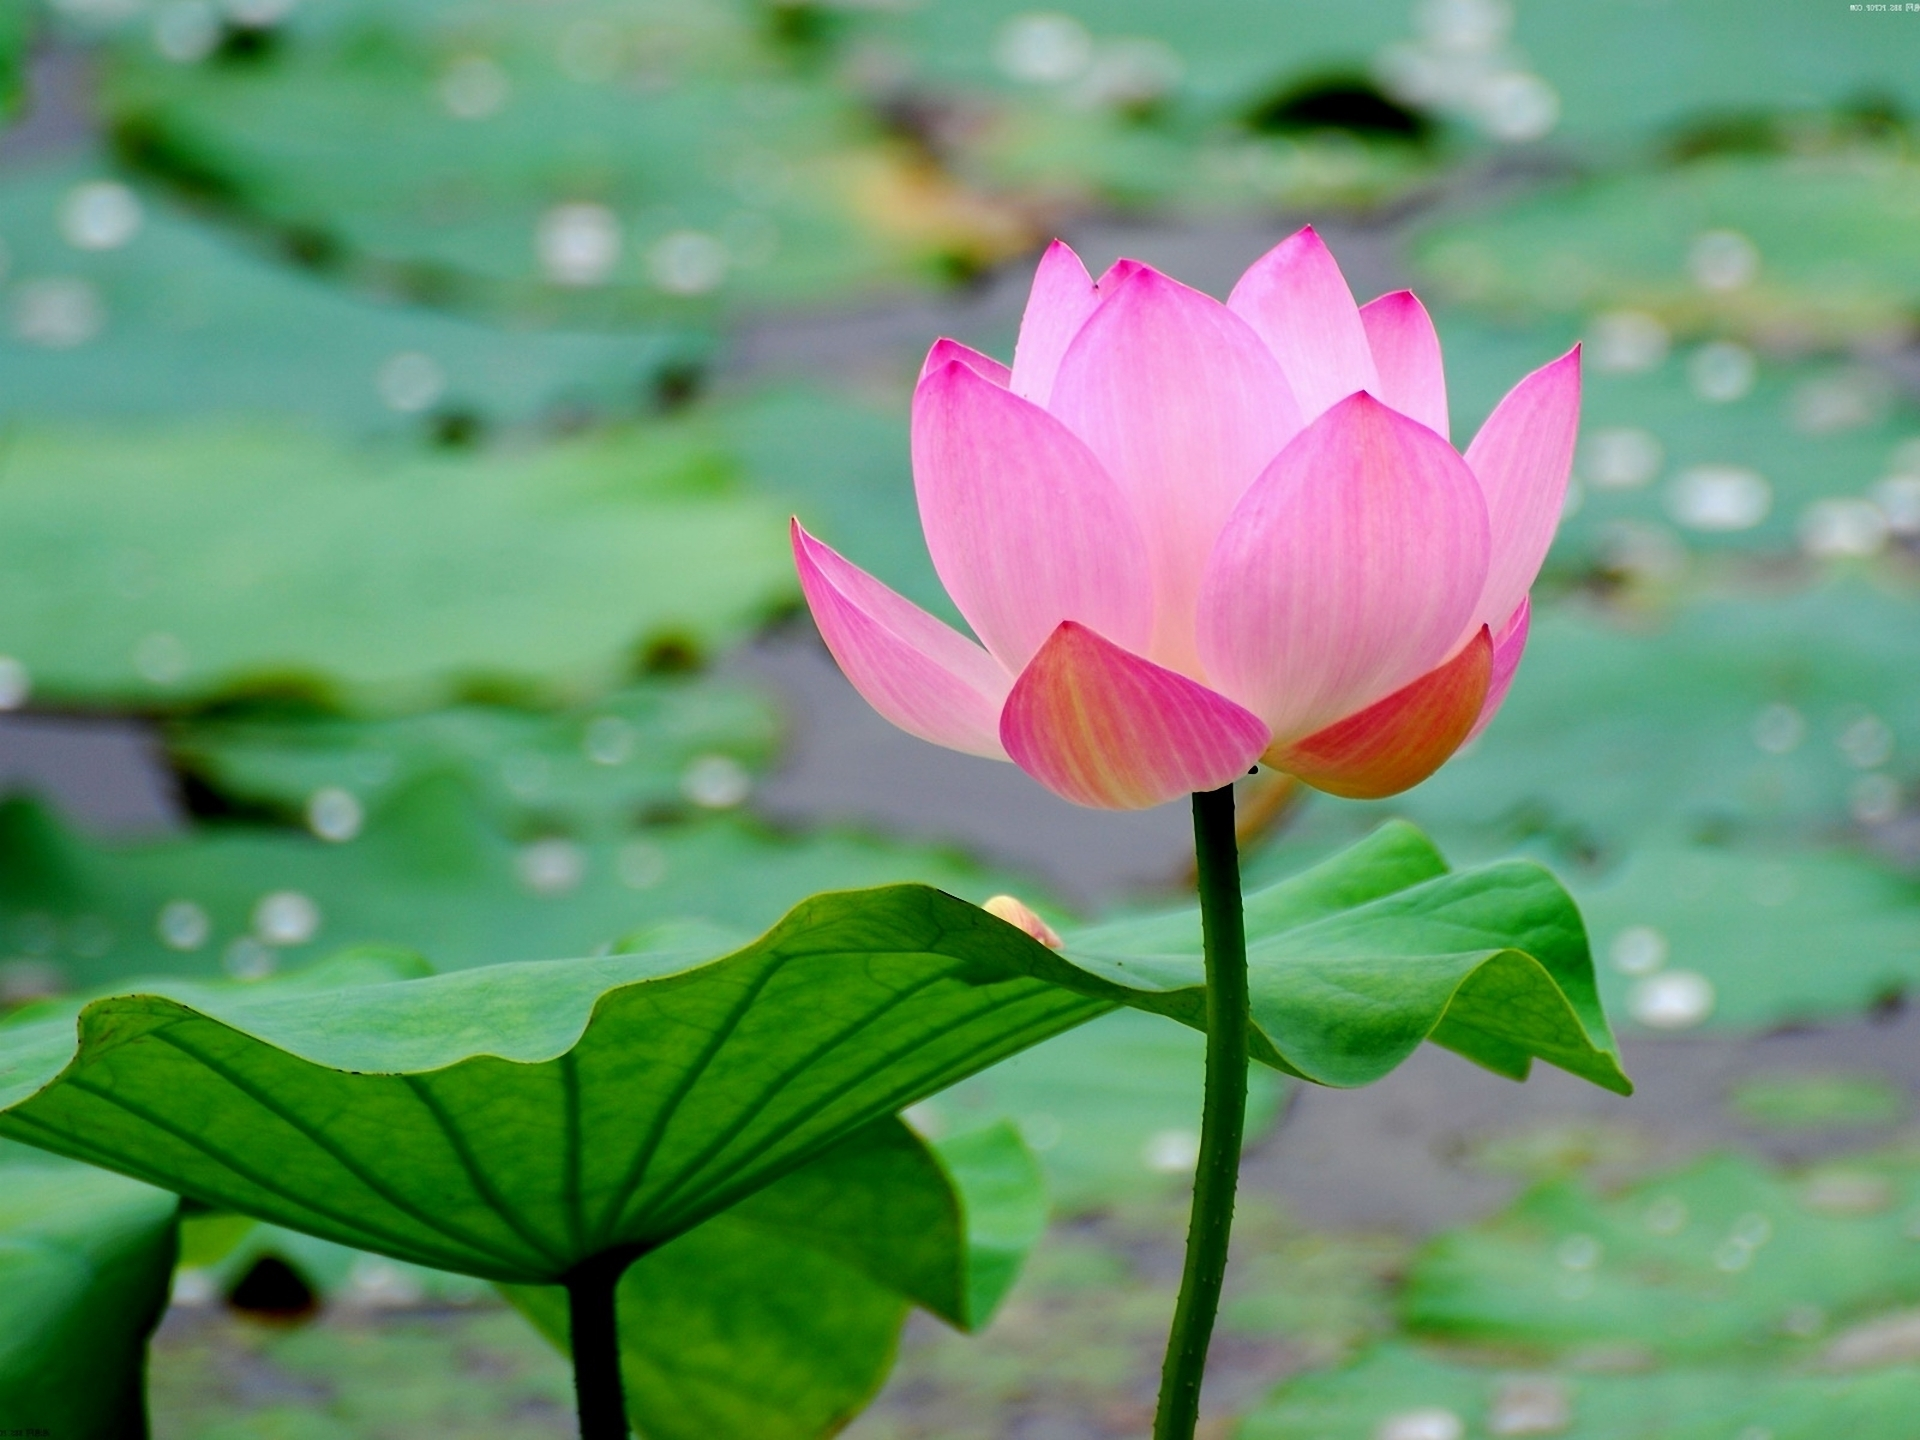 Lotus flower wallpapers pictures images lotus flower wallpaper lotus flower wallpaper izmirmasajfo